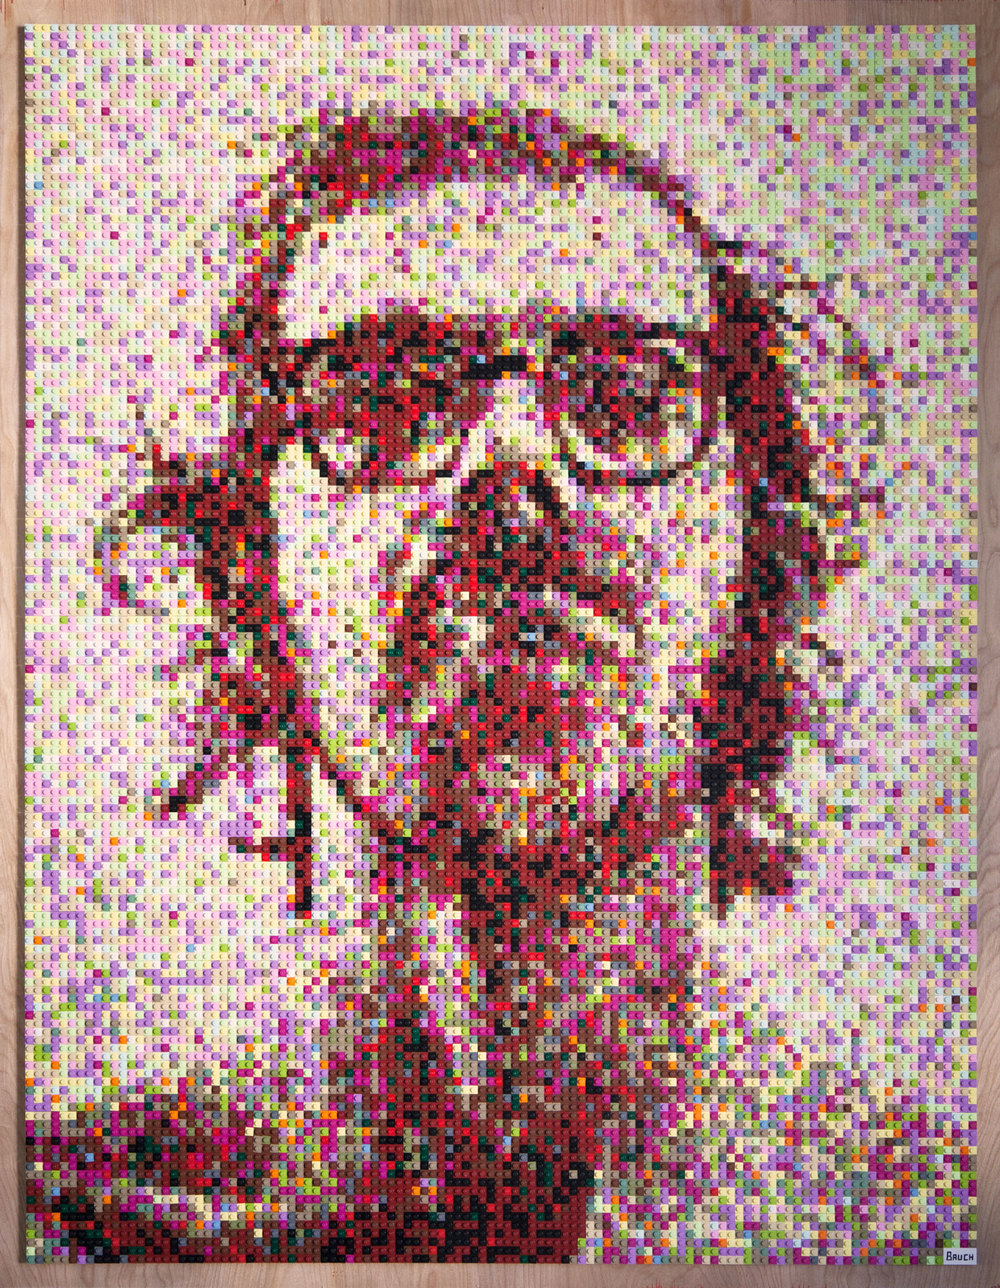 The completed piece, an interpretation of Big Self-Portrait